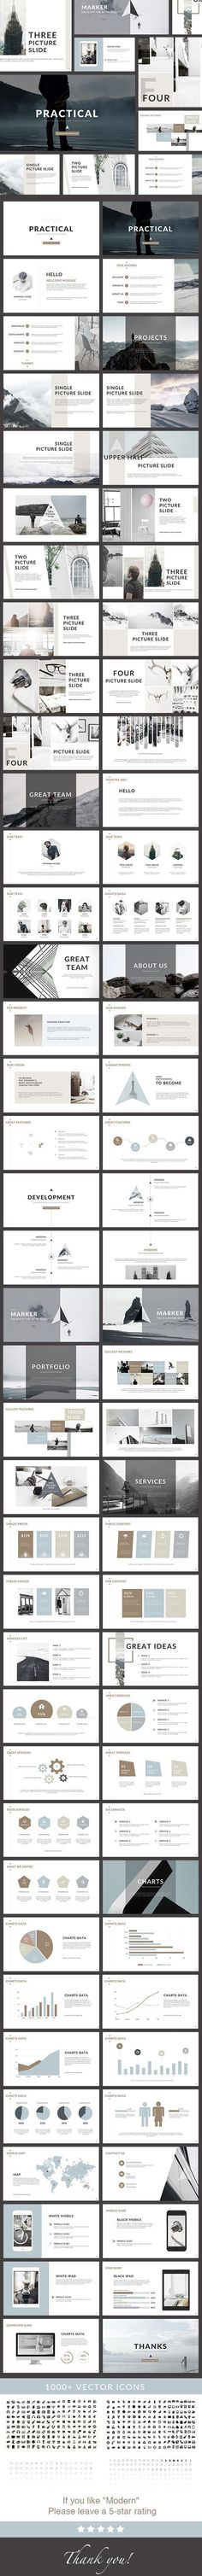 Practical - Clean PowerPoint Presentation - Creative PowerPoint Templates